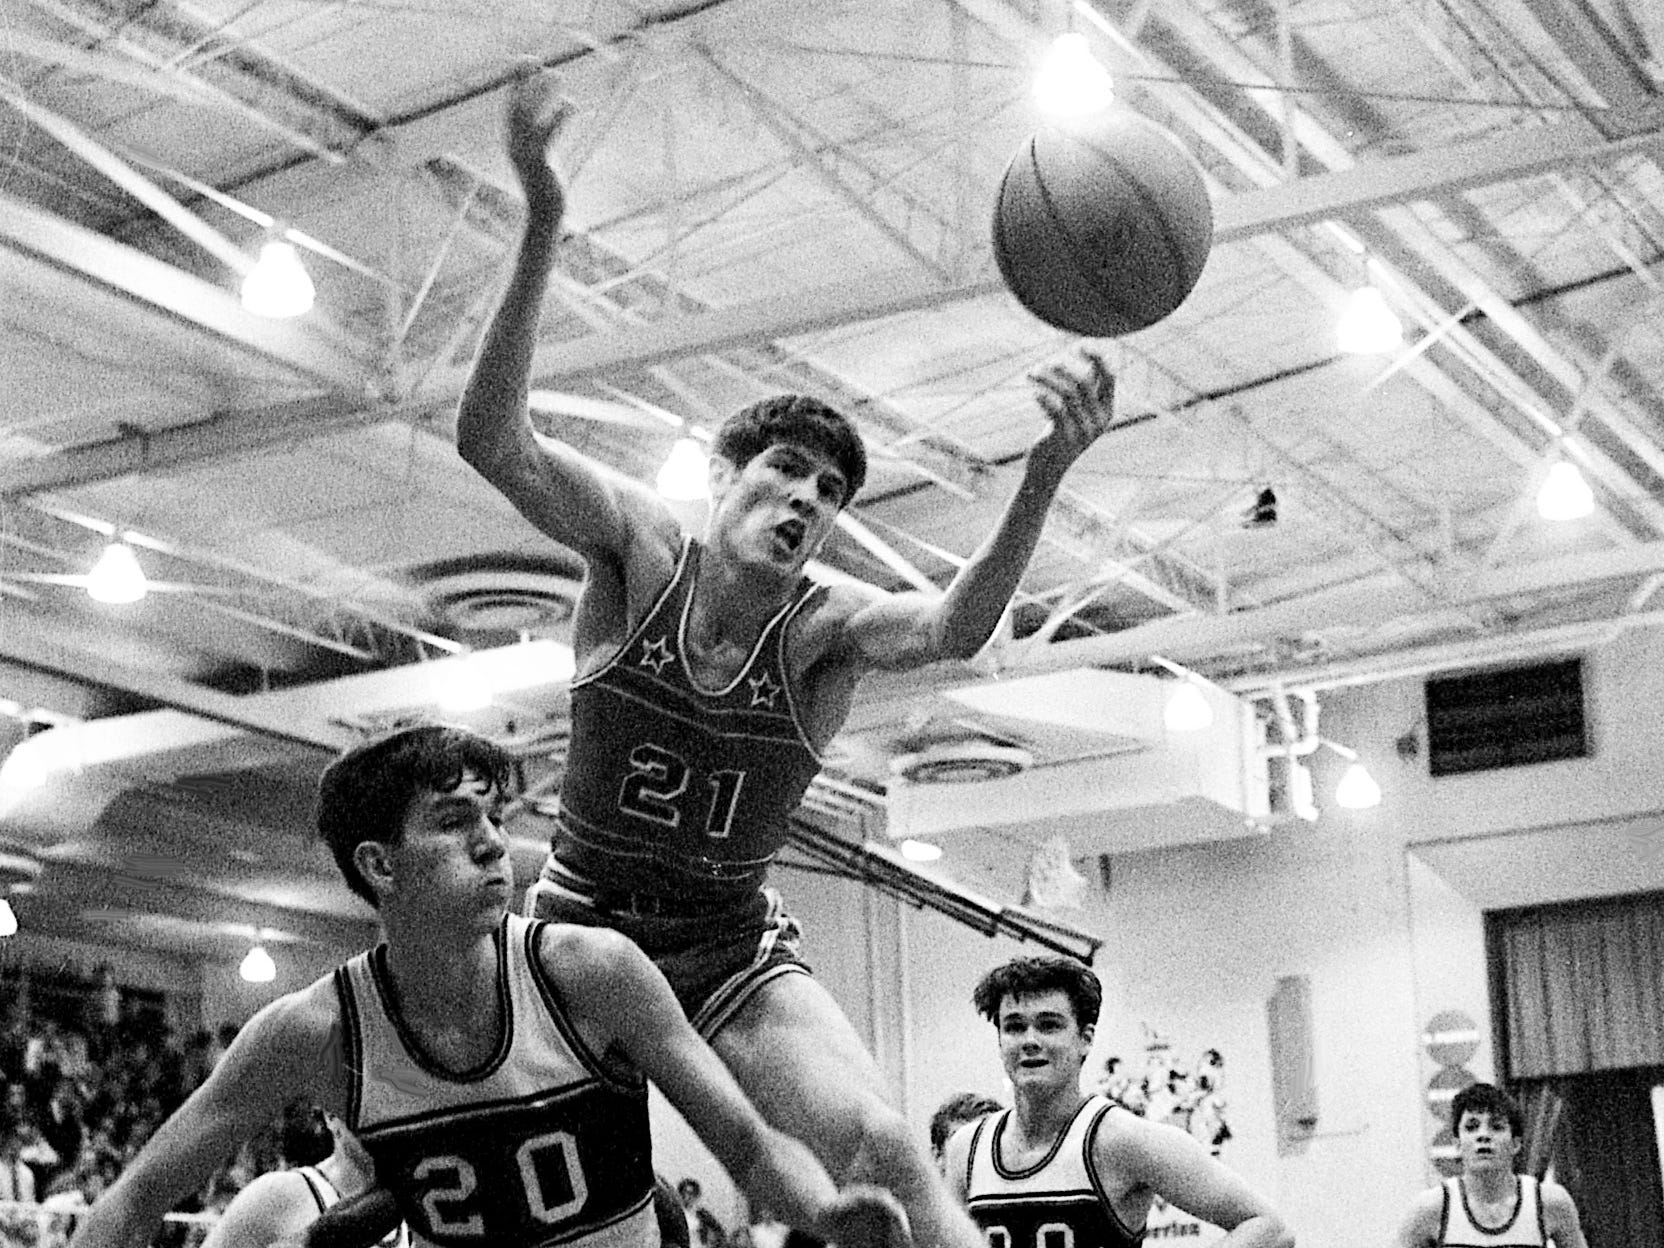 Glencliff High's David Lane (21) attempts to go over Overton High's Johnny Murphy (20) for the rebound during their 19th District battle, which went into overtime Jan. 10, 1969, before Glencliff finally pulled out a 55-53 win.